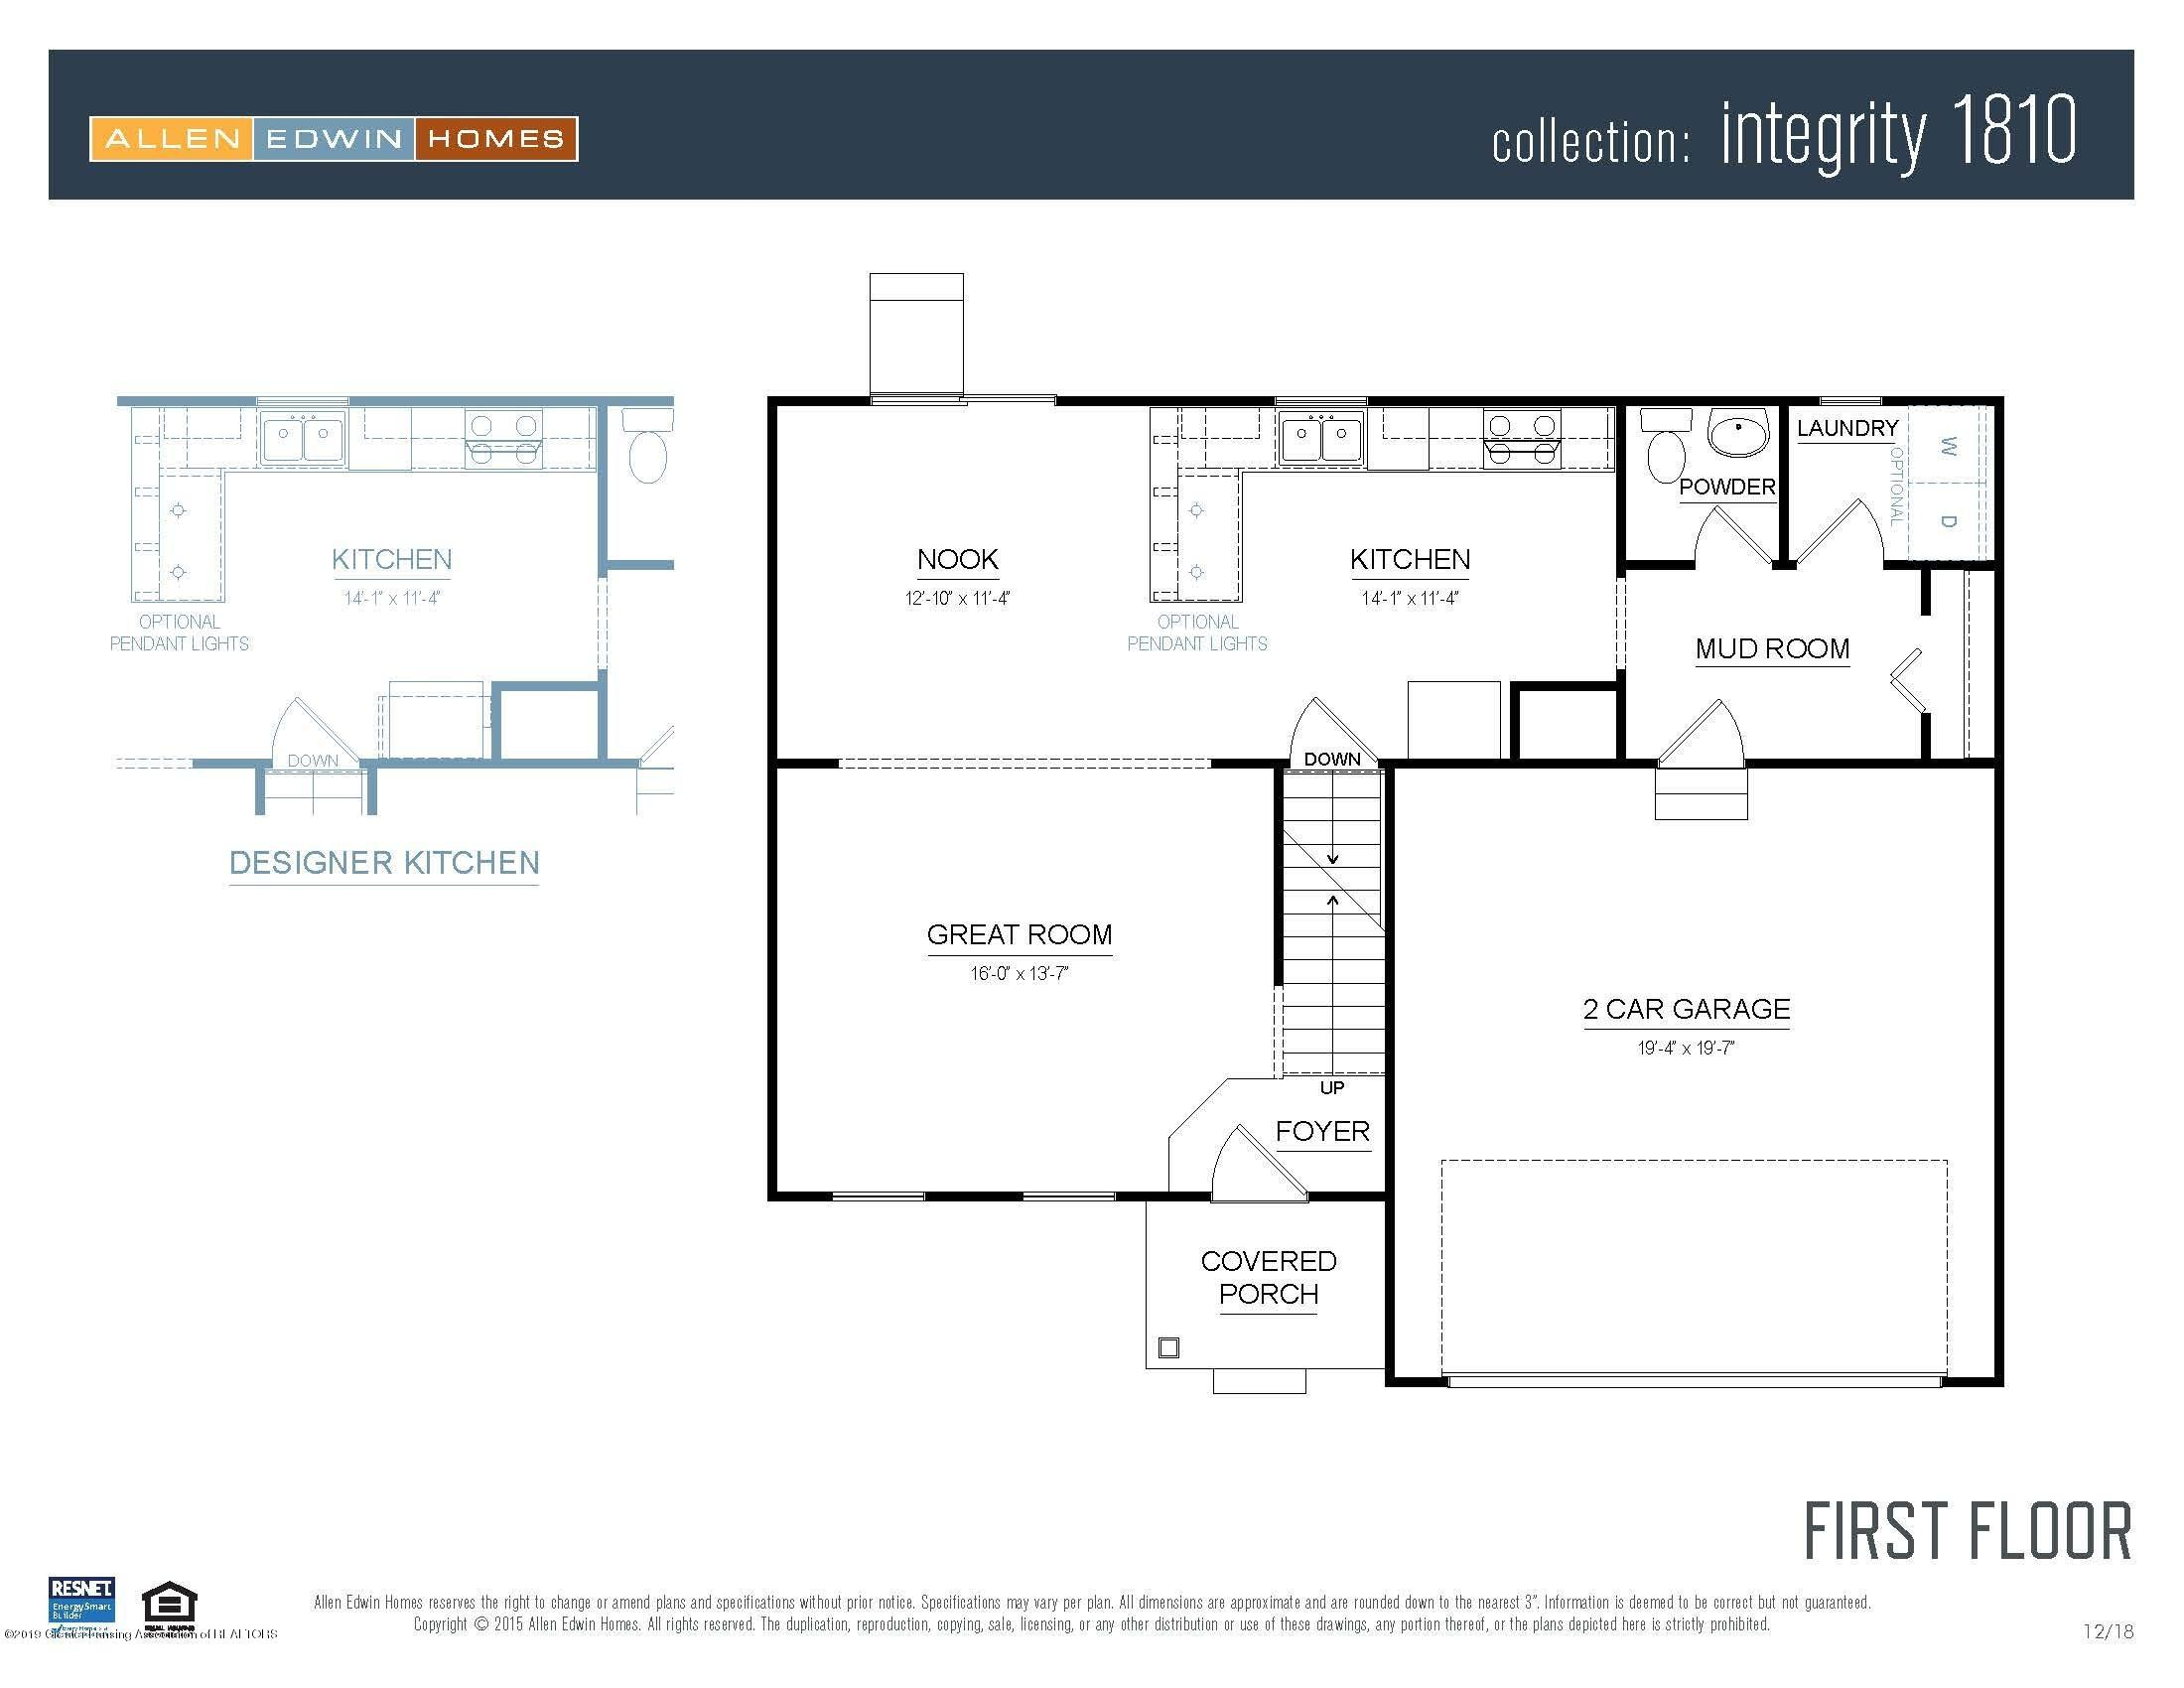 236 Noleigh - Integrity 1810 V8.0a First Floor - 19